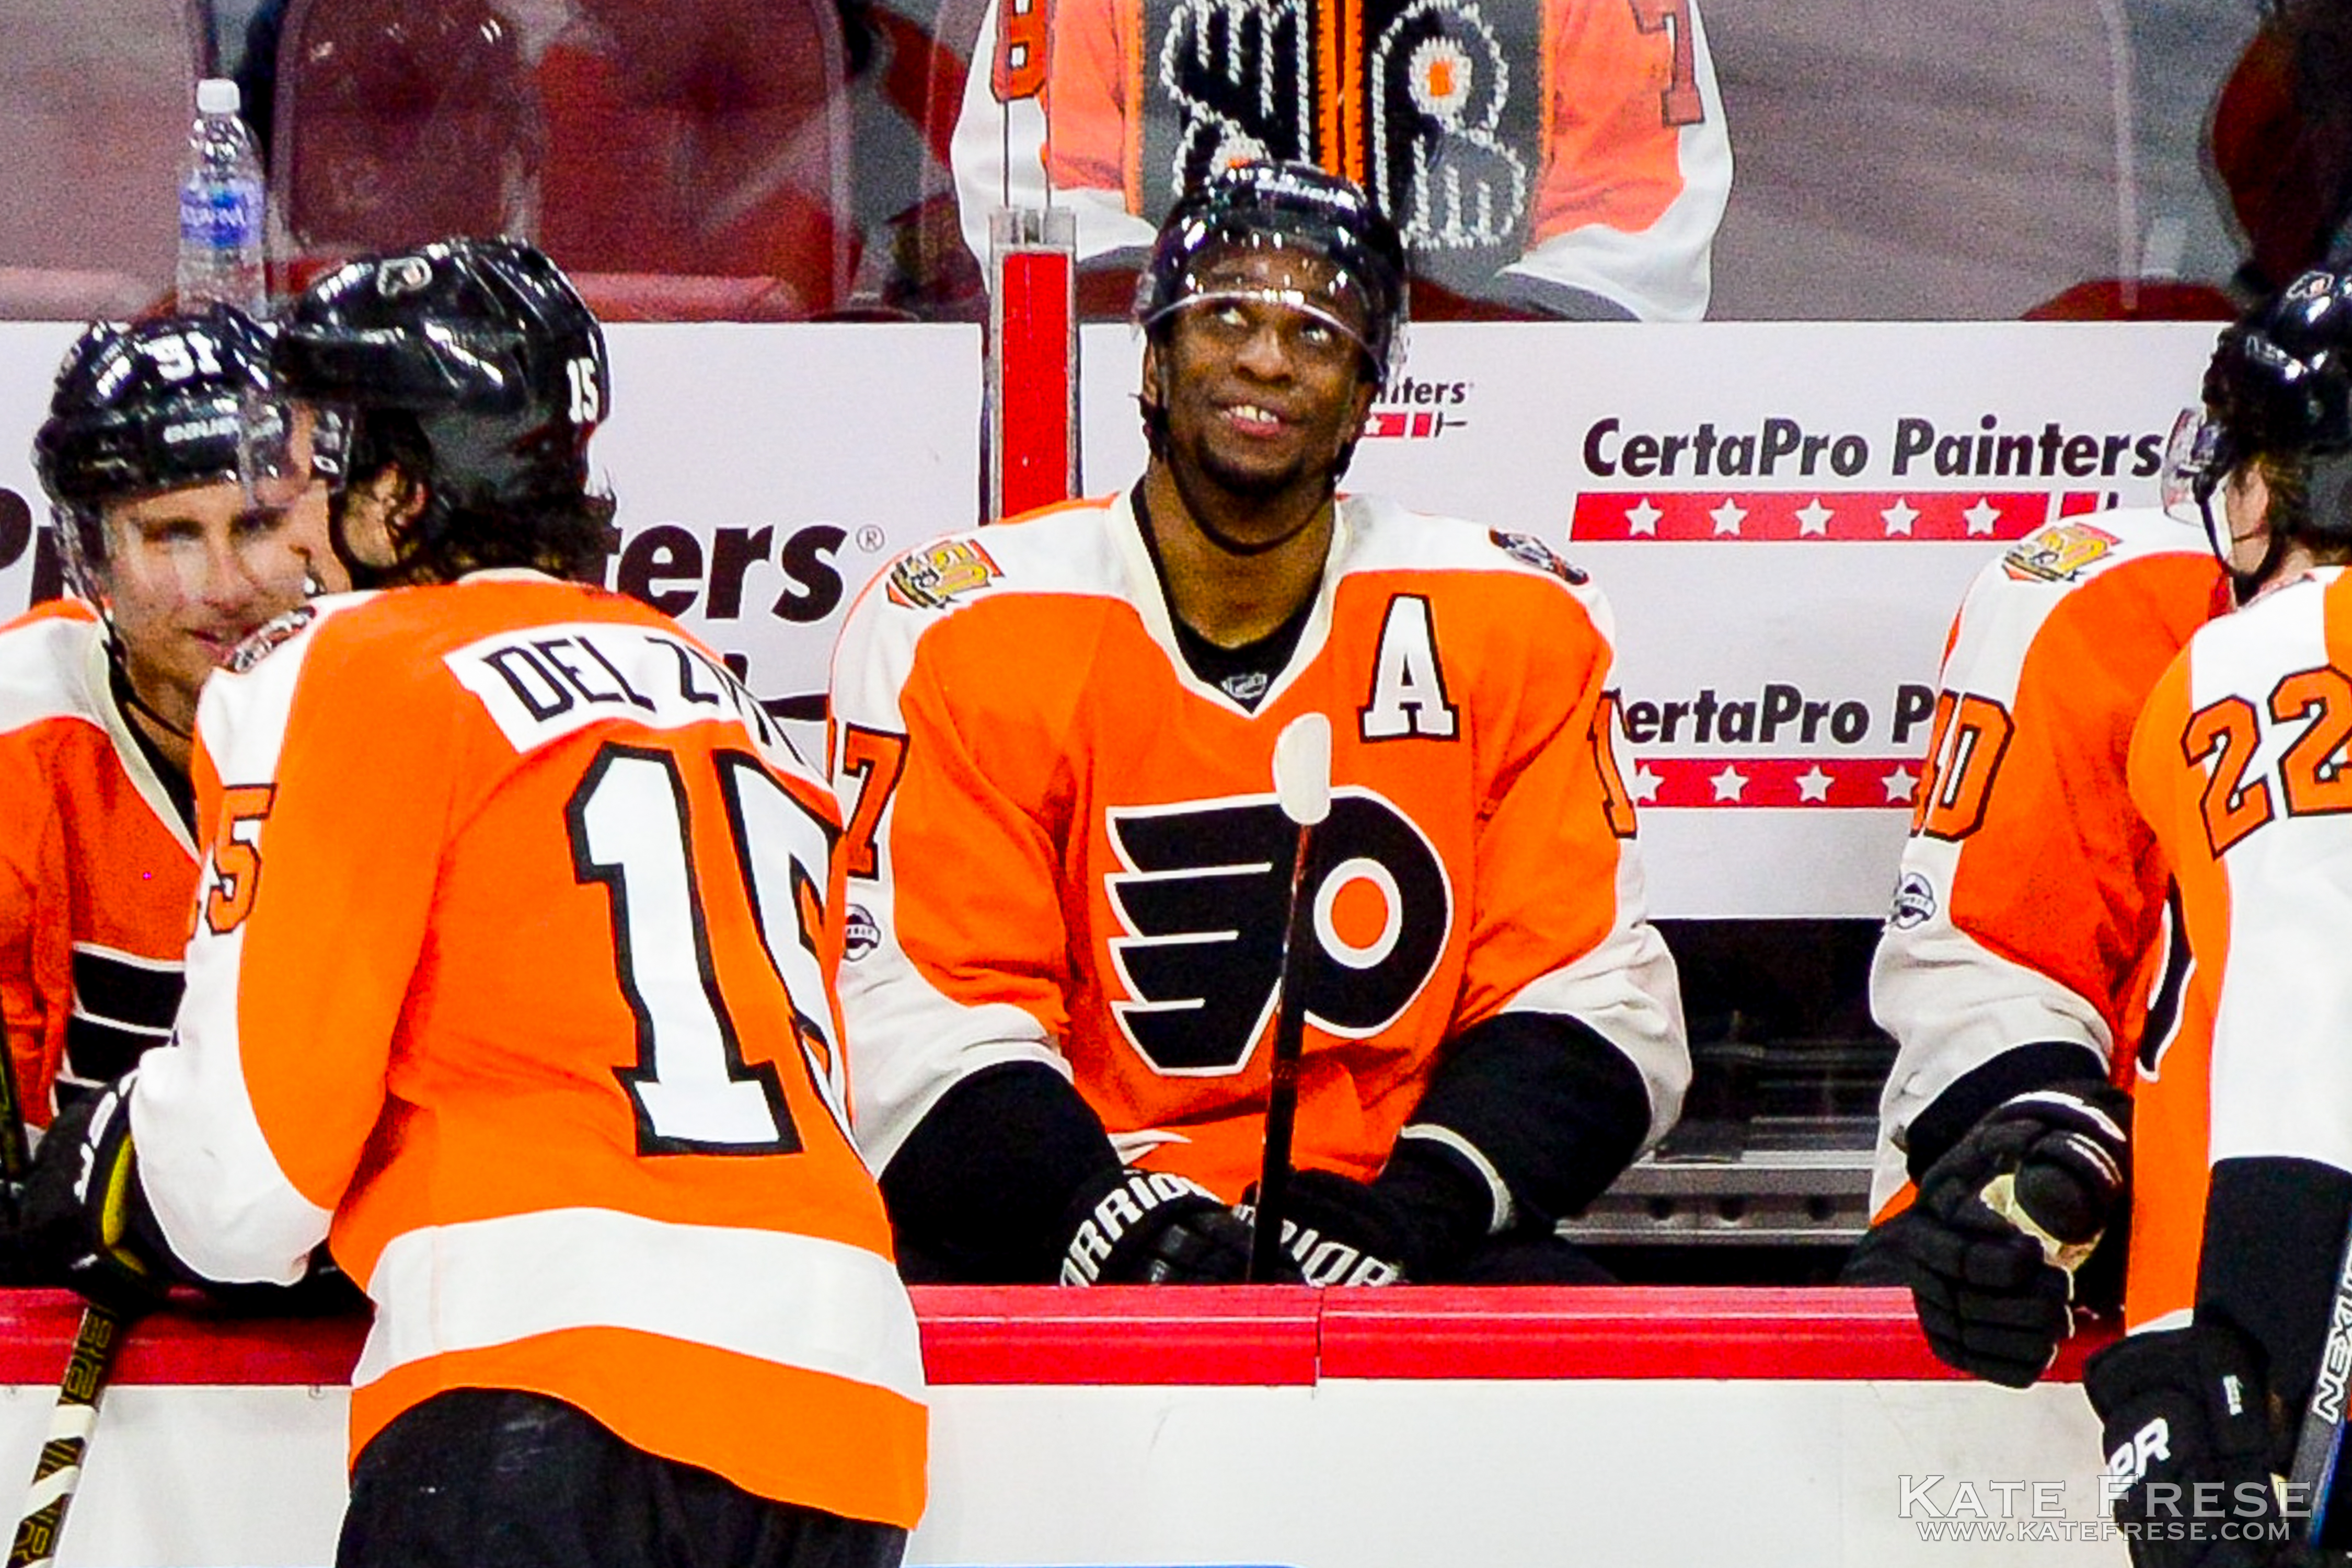 The best photos from the Flyers shootout win against the